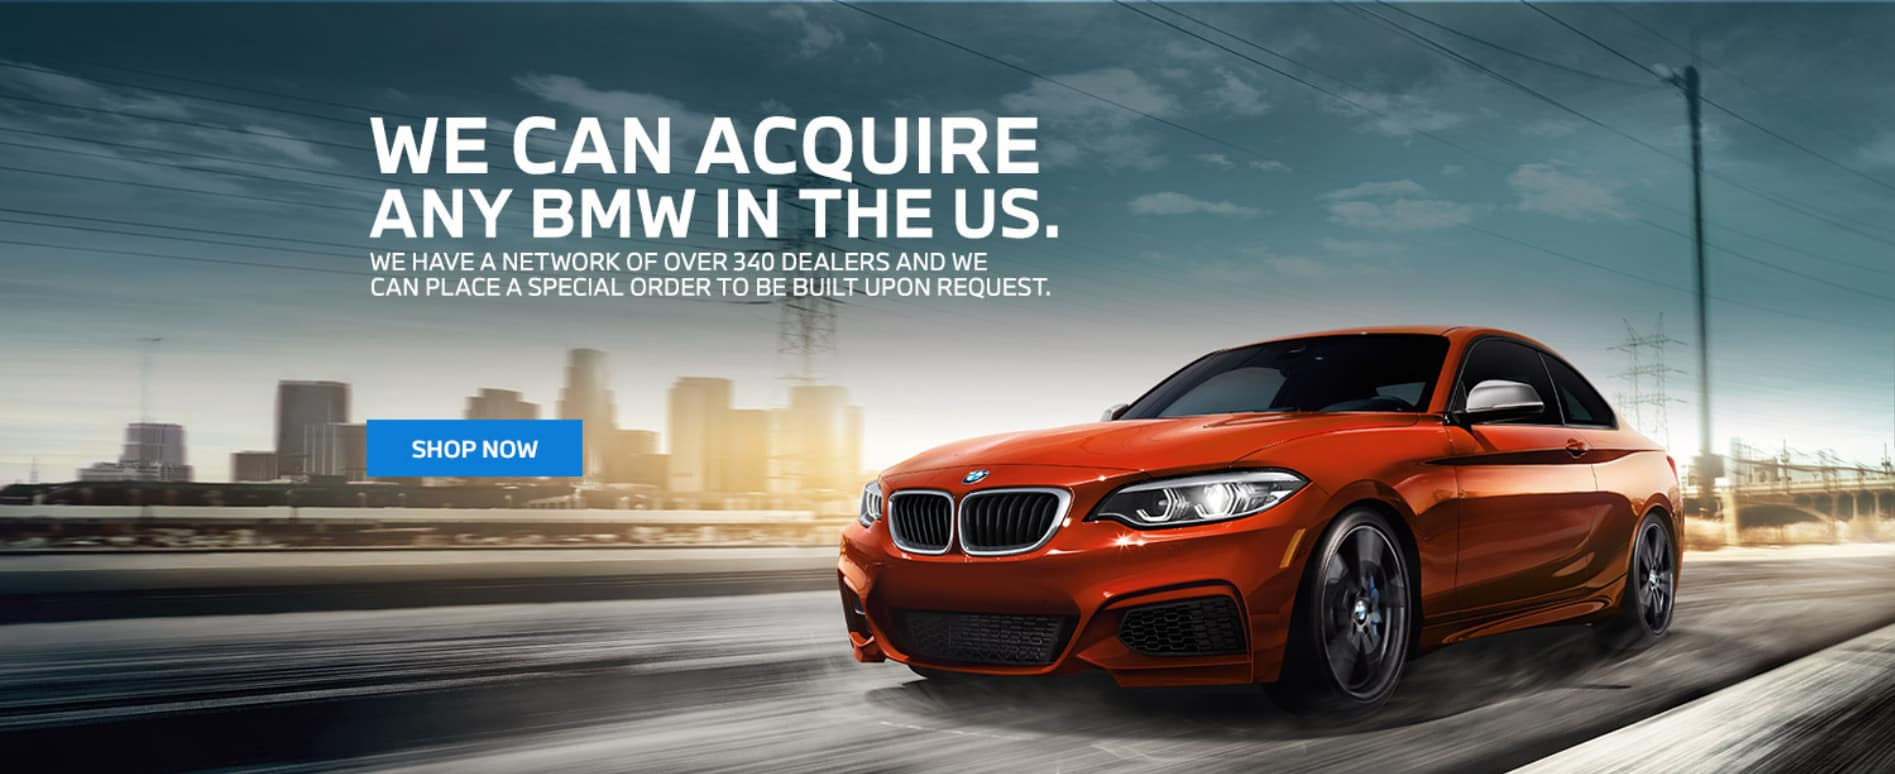 We can acquire any new BMW in the USA